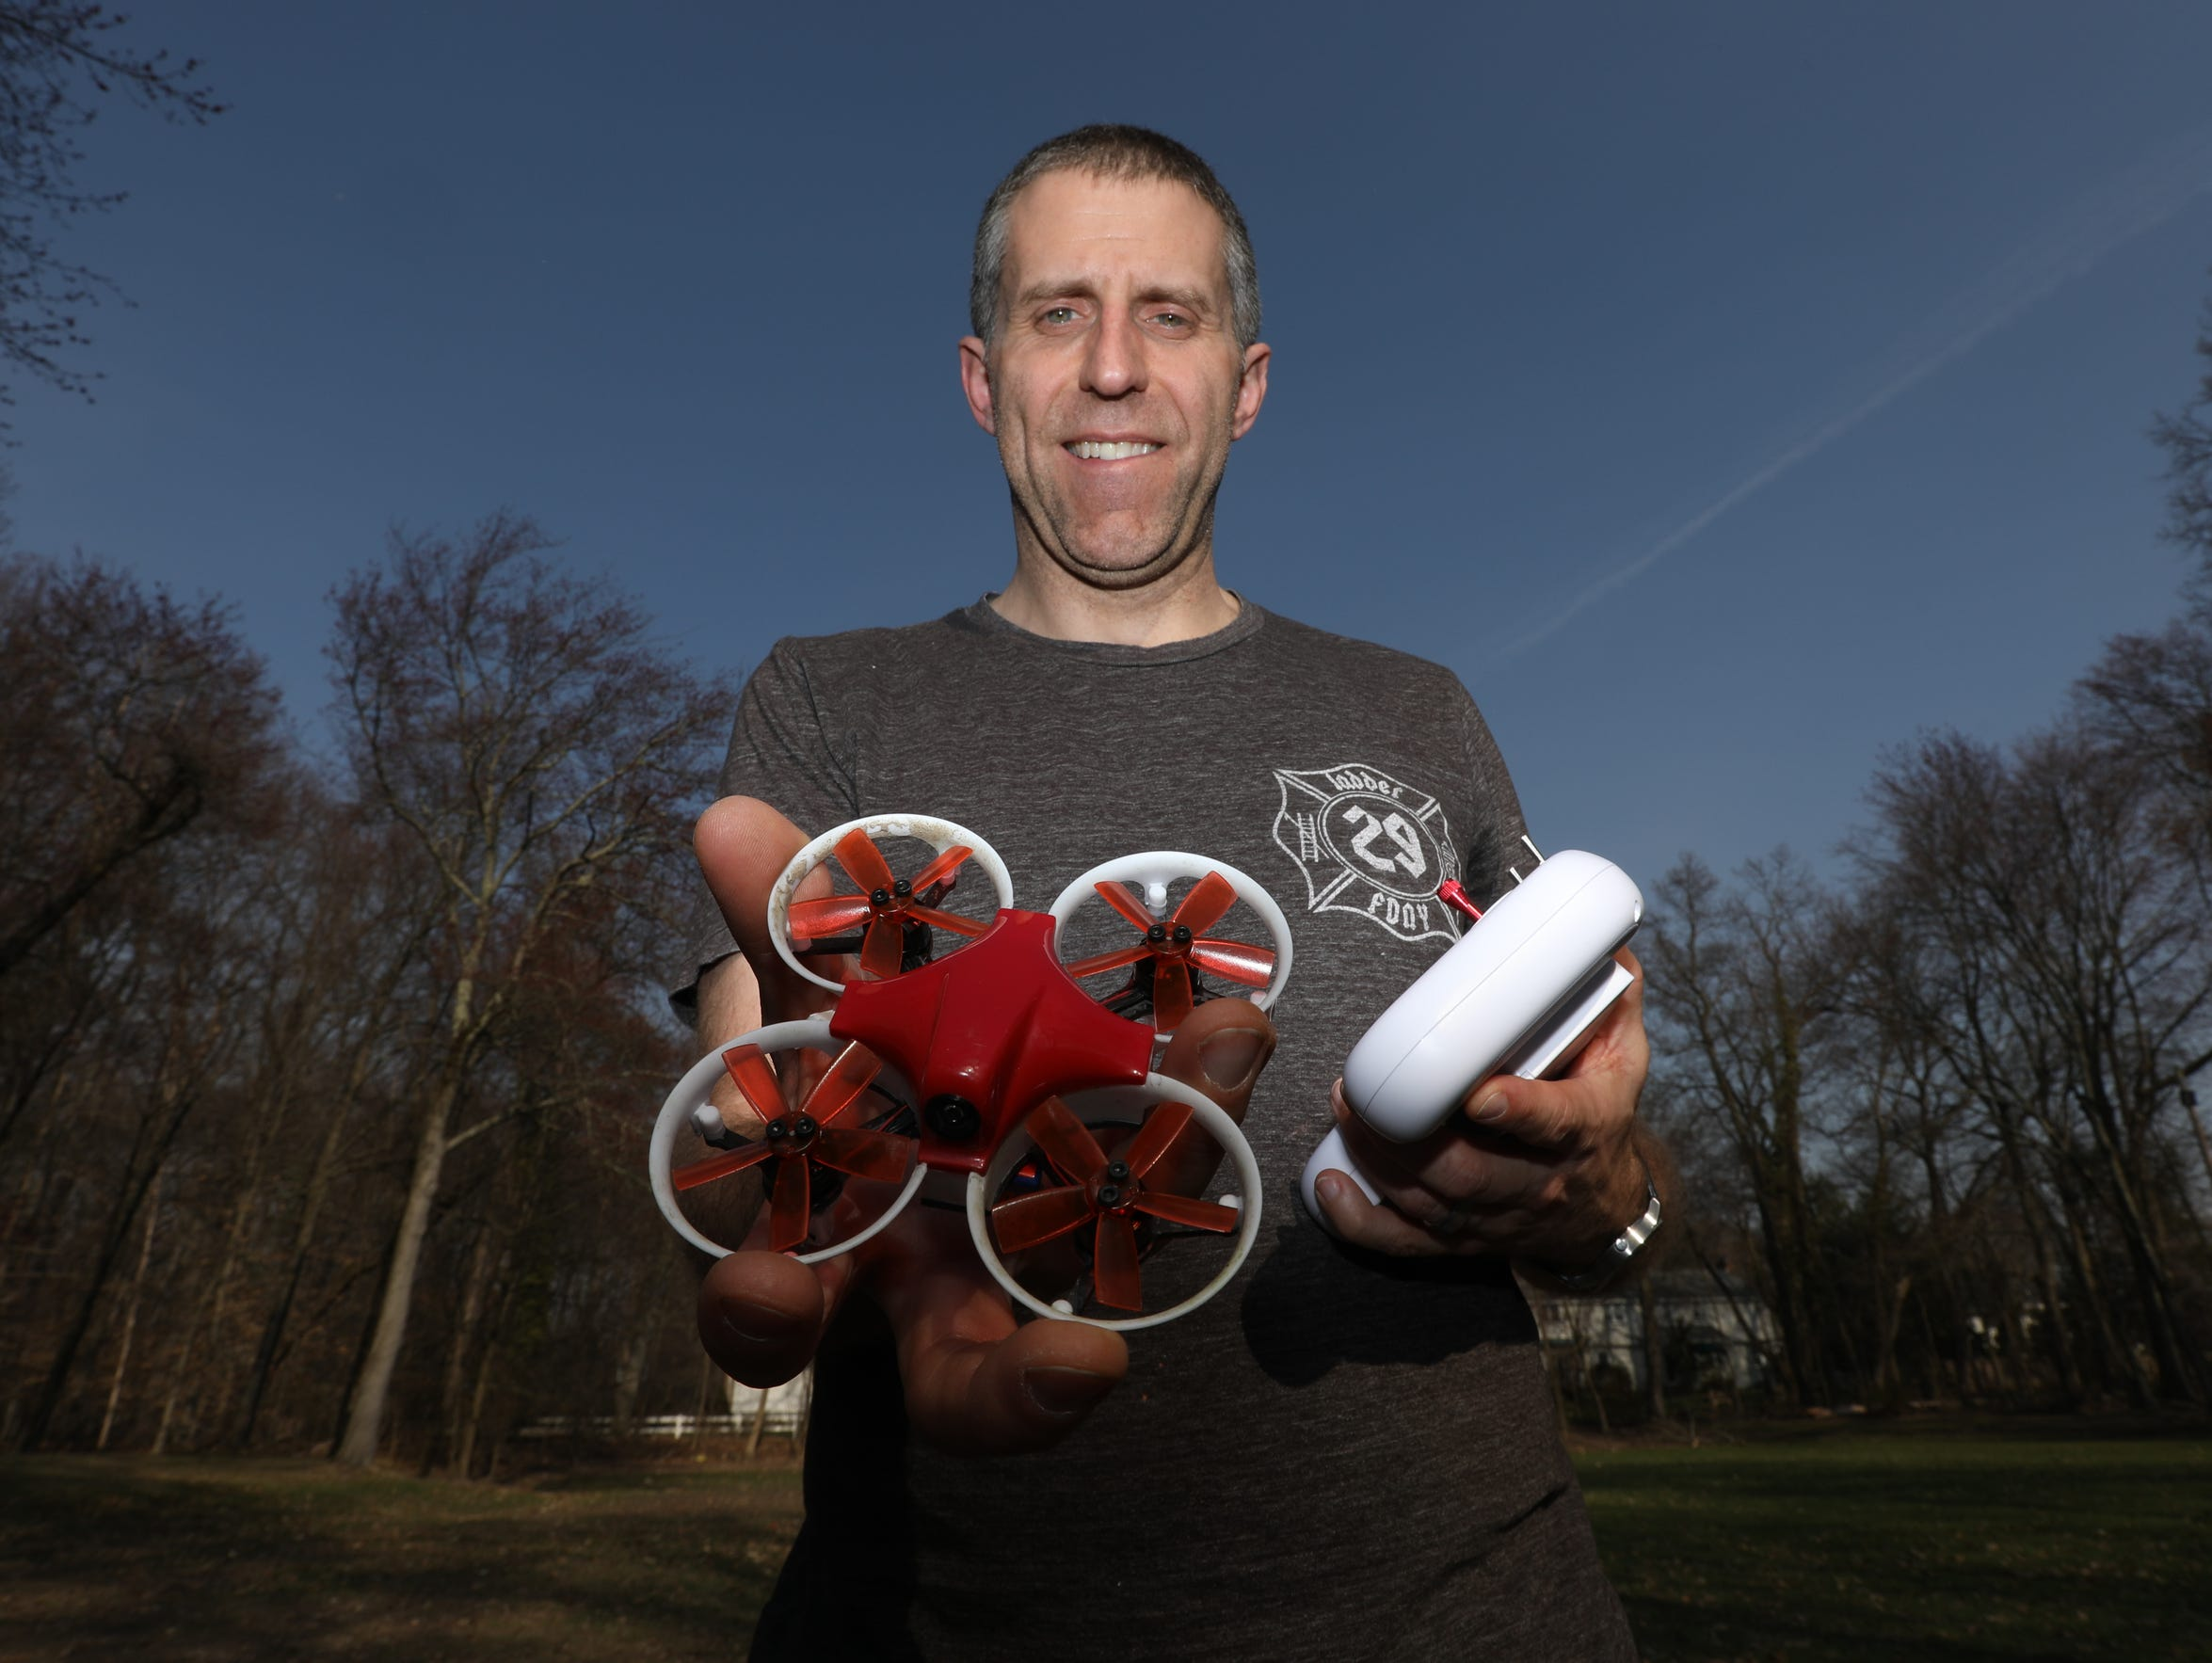 Vinny Garrison with a racing drone like the ones his